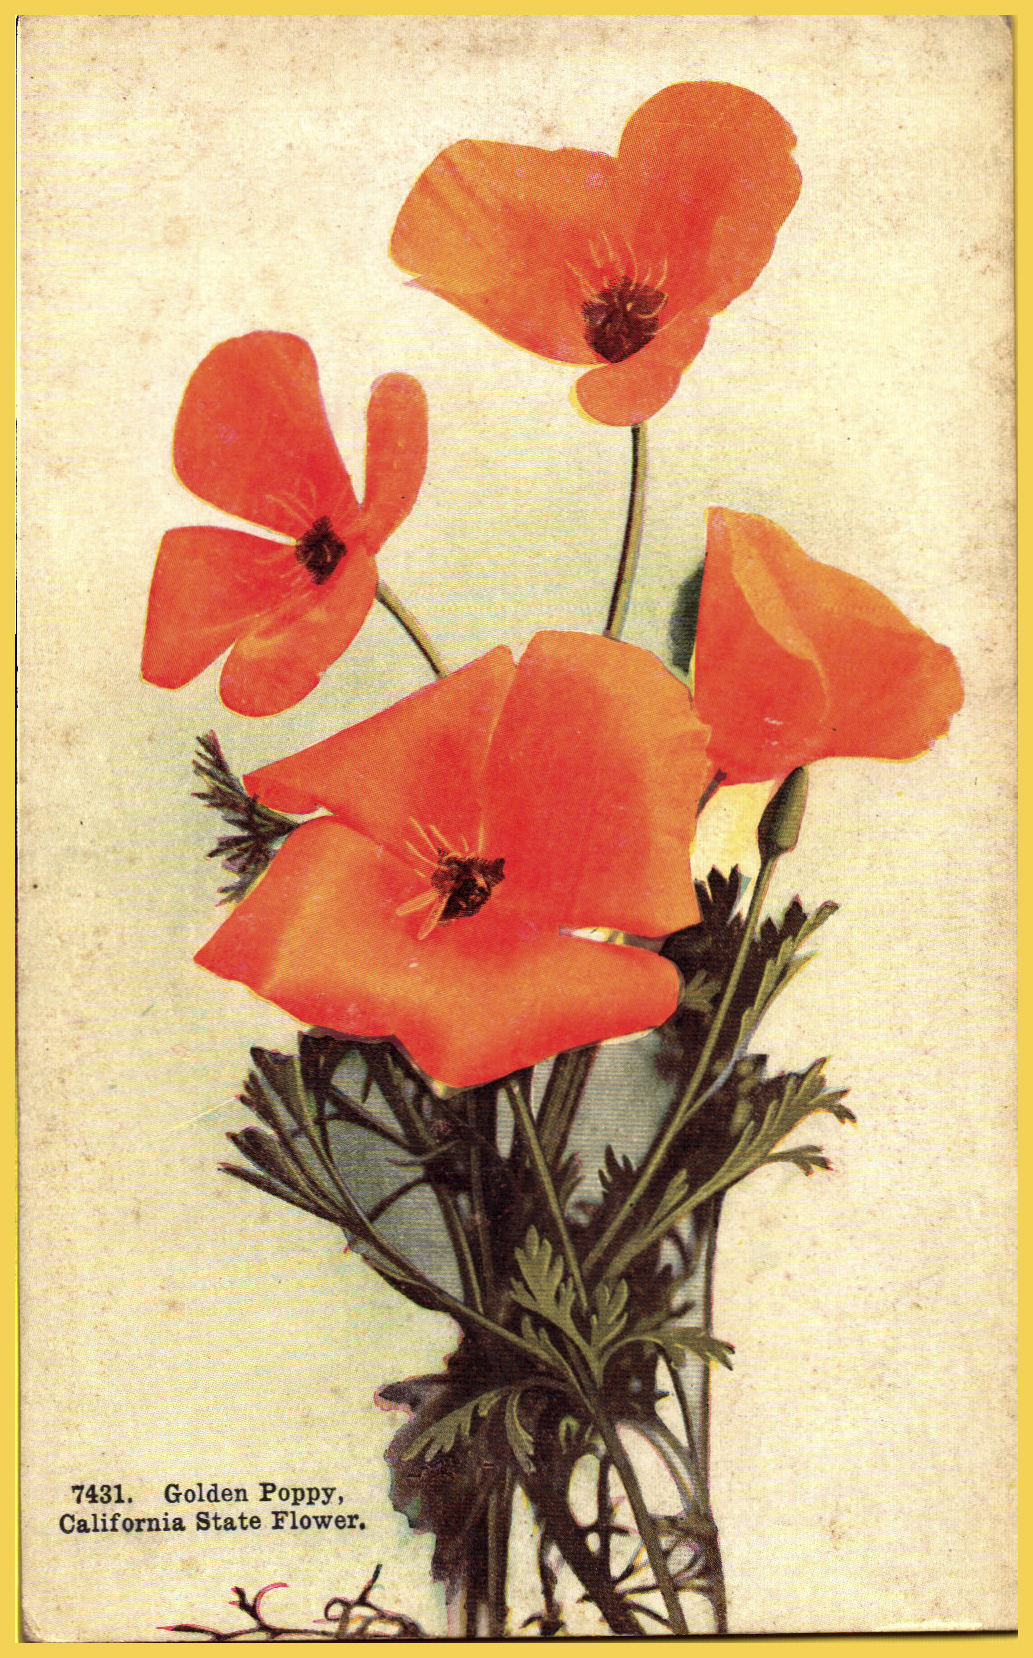 The Golden Poppy California State Flower Hippostcard